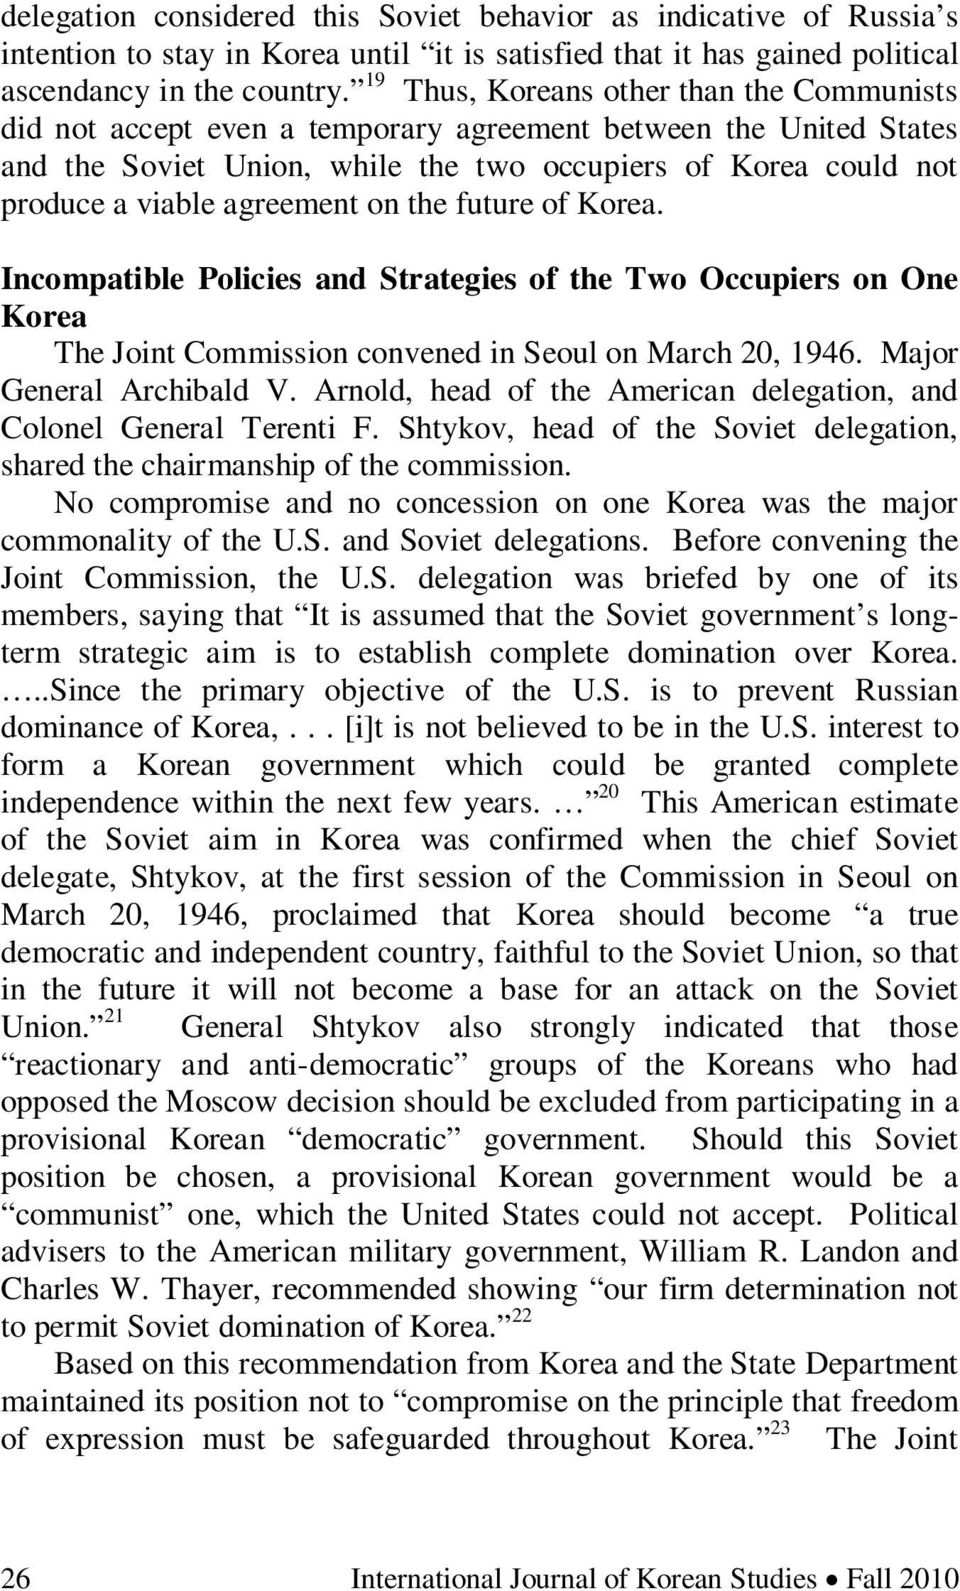 agreement on the future of Korea. Incompatible Policies and Strategies of the Two Occupiers on One Korea The Joint Commission convened in Seoul on March 20, 1946. Major General Archibald V.